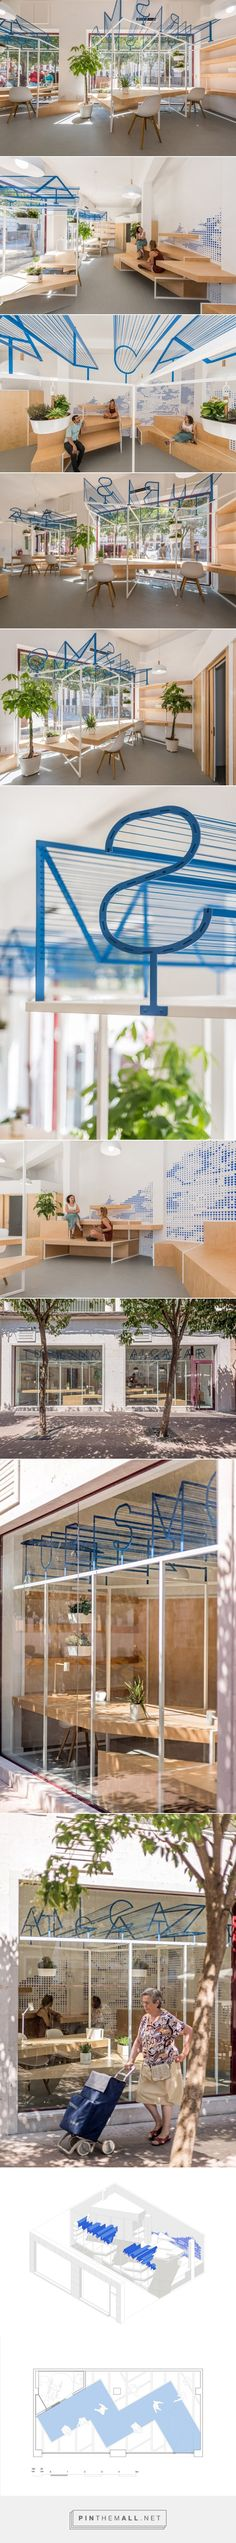 A Modern Tourist Office in Spain Featuring Cool Graphic Typography - Design Milk - created via http://pinthemall.net